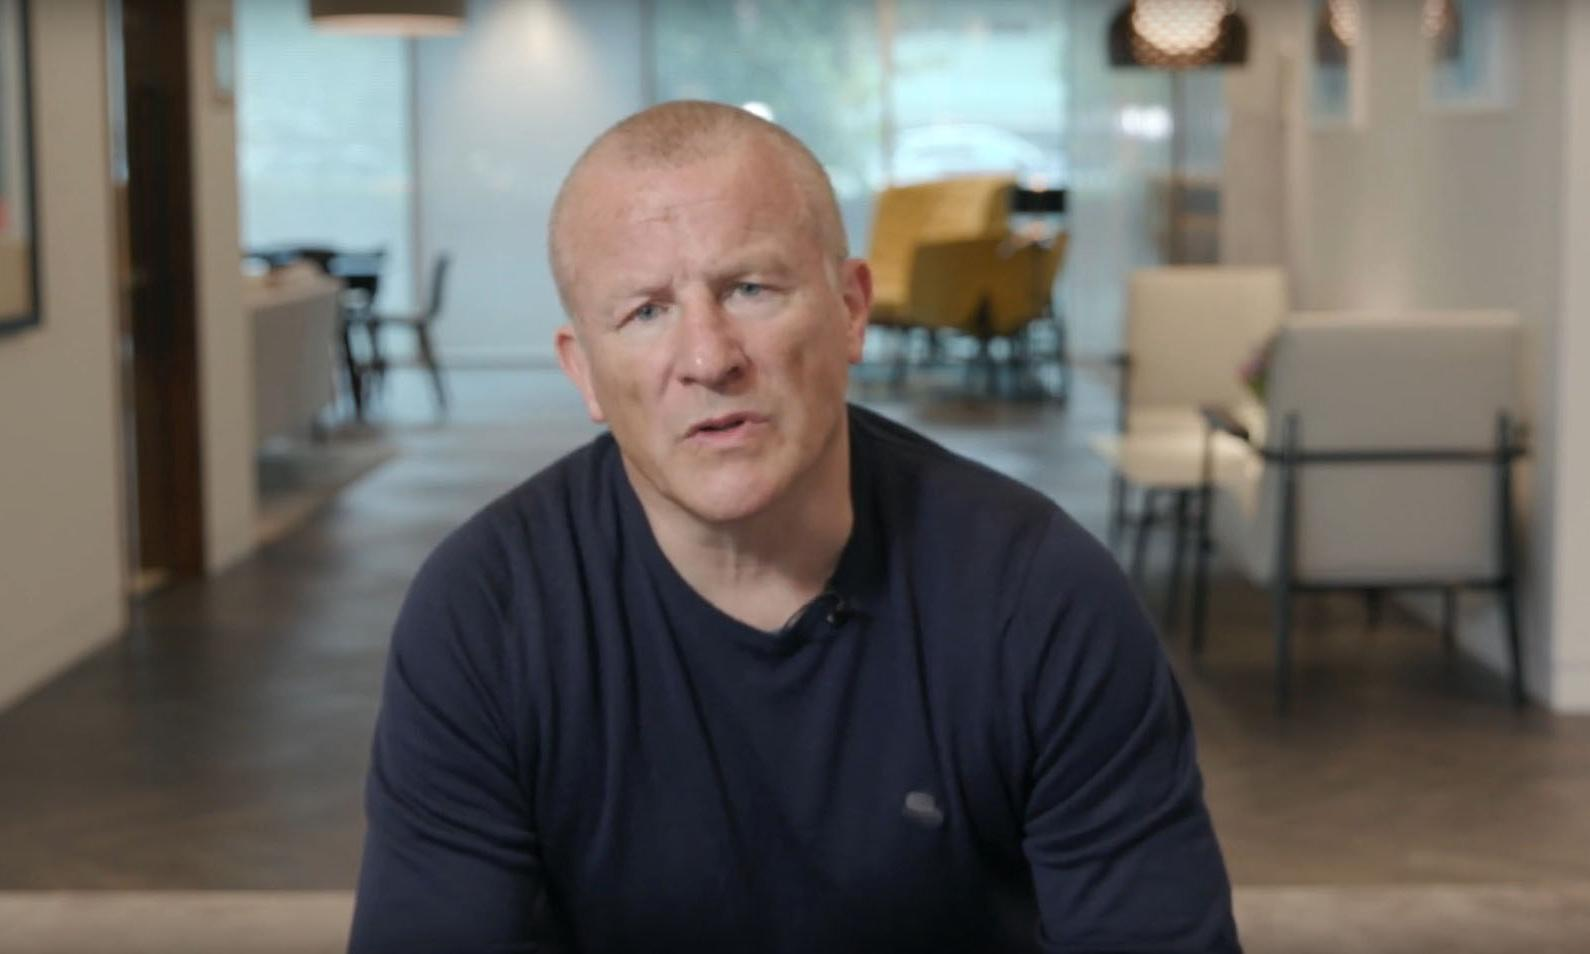 Investors in Neil Woodford fund could lose further £1bn